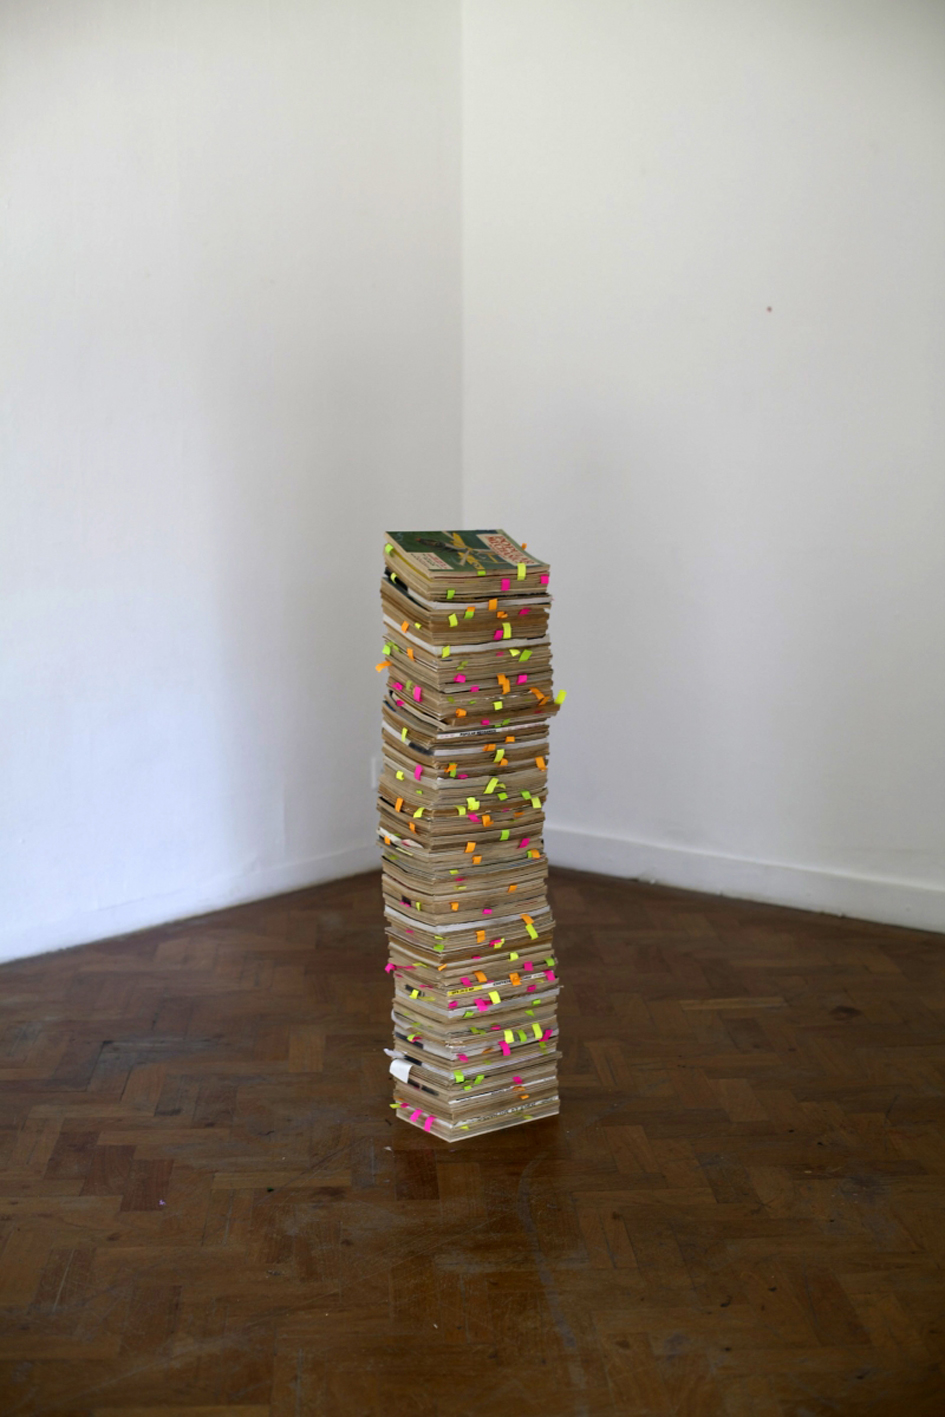 Install shot of: The RagPickers Tower, 2012